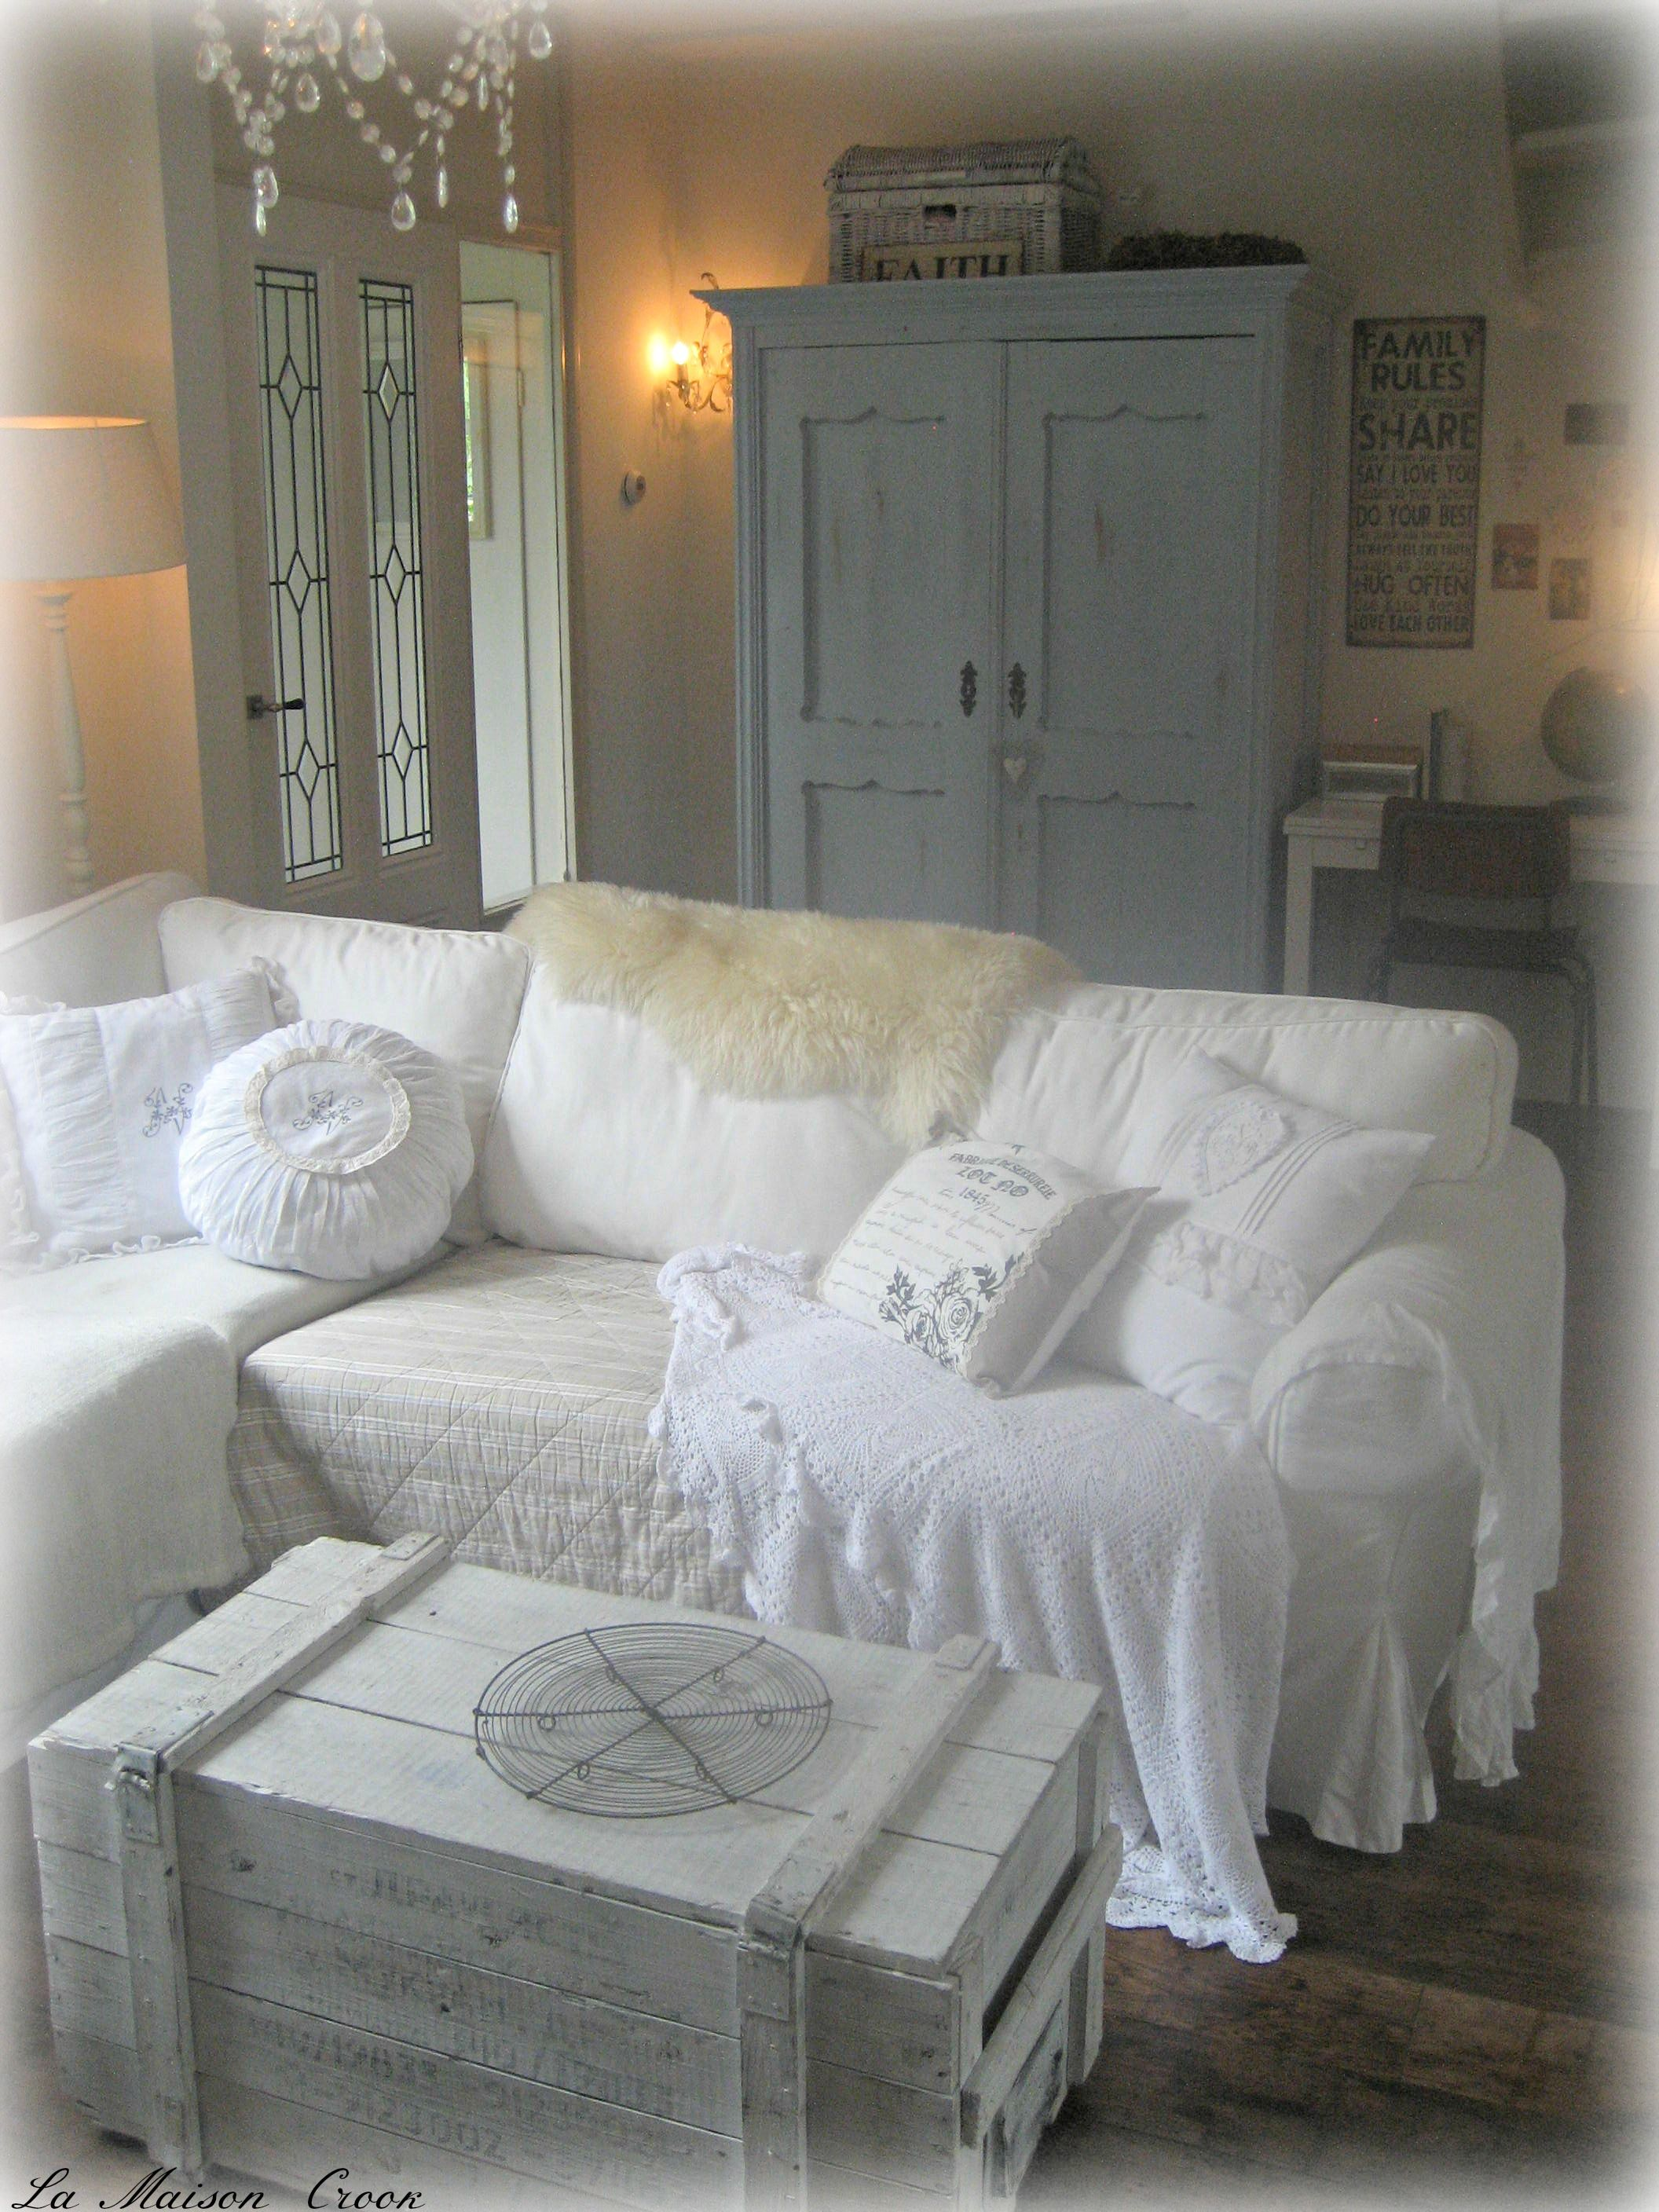 Brocante woonkamer living room shabby chic c o u n t for Brocante woonkamer